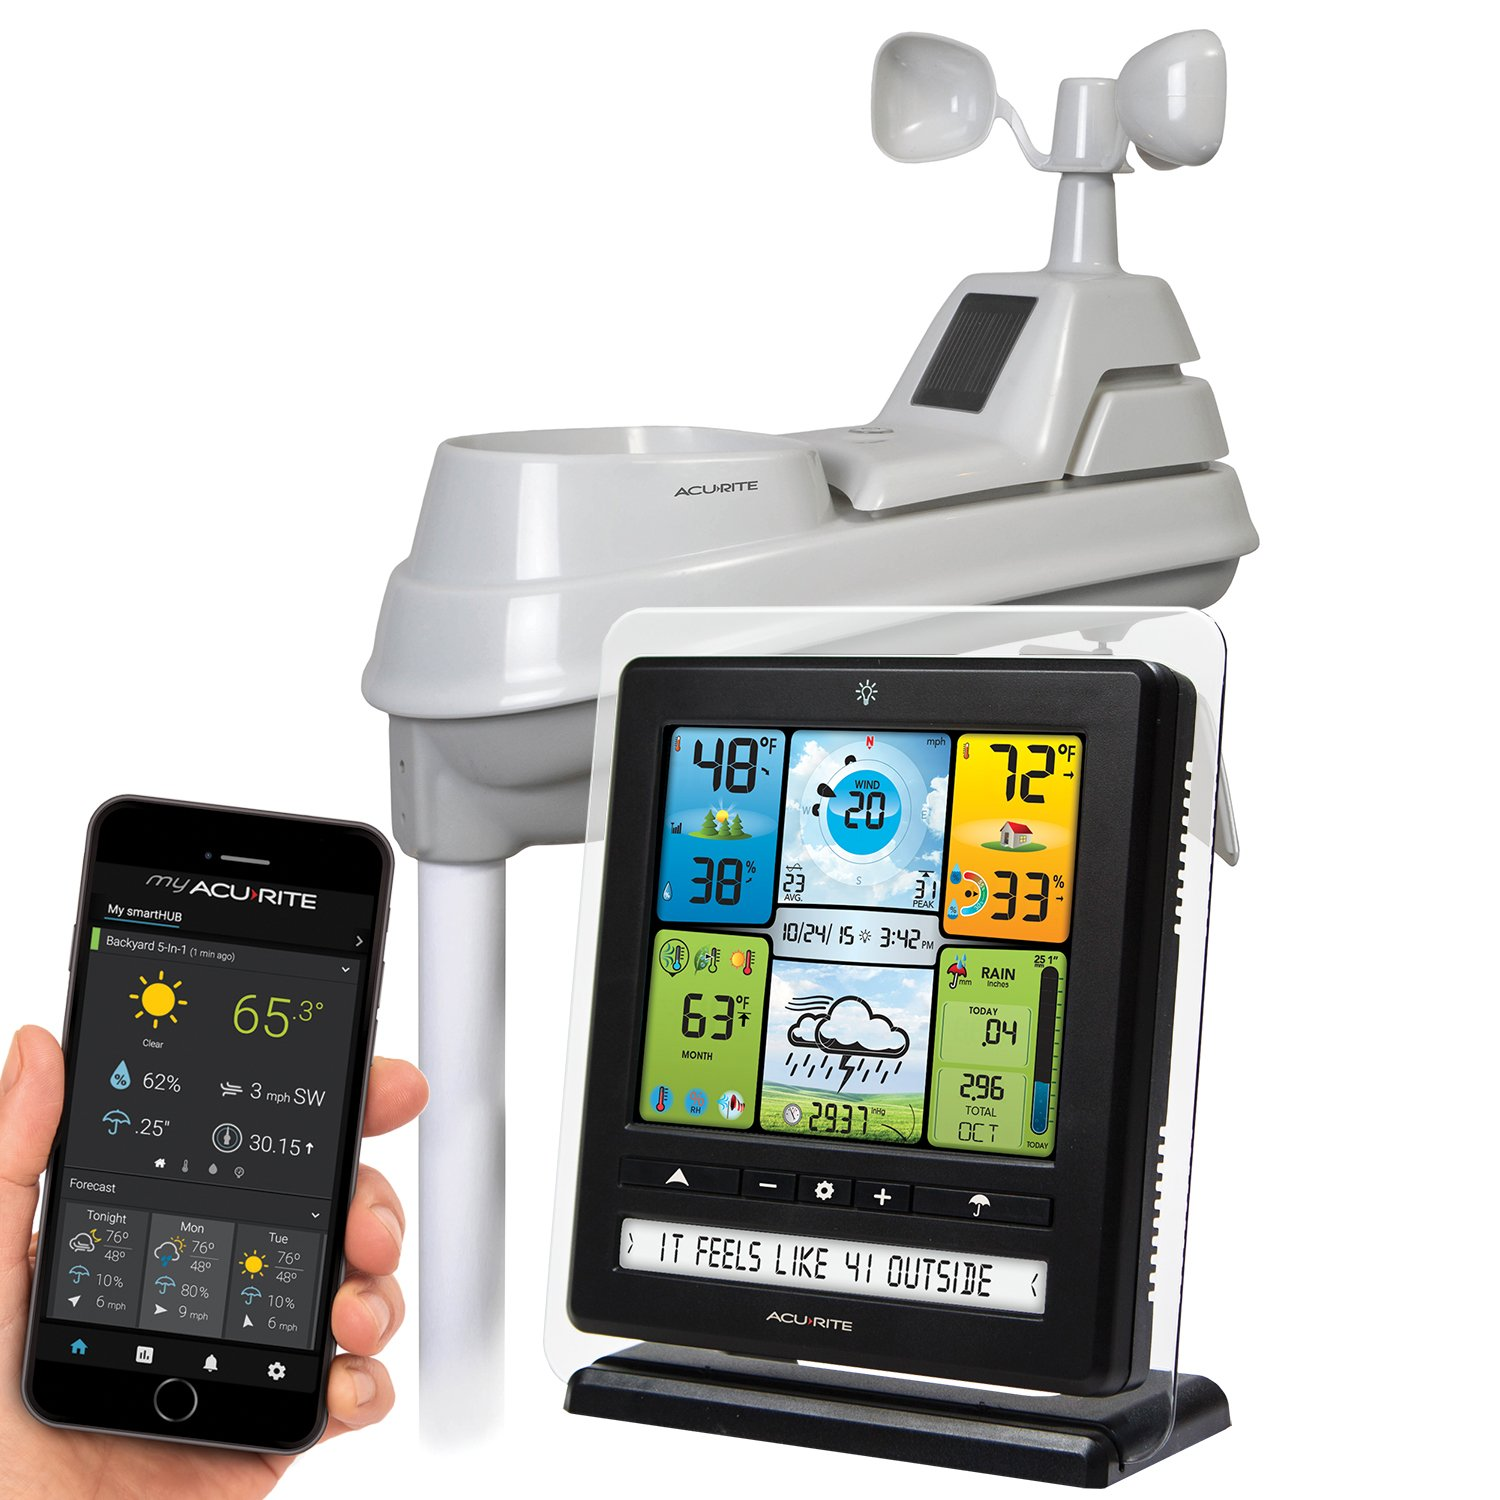 AcuRite 02064 Wireless Weather Station with PC Connect, 5-in-1 Weather Sensor and My AcuRite Remote Monitoring Weather App by AcuRite